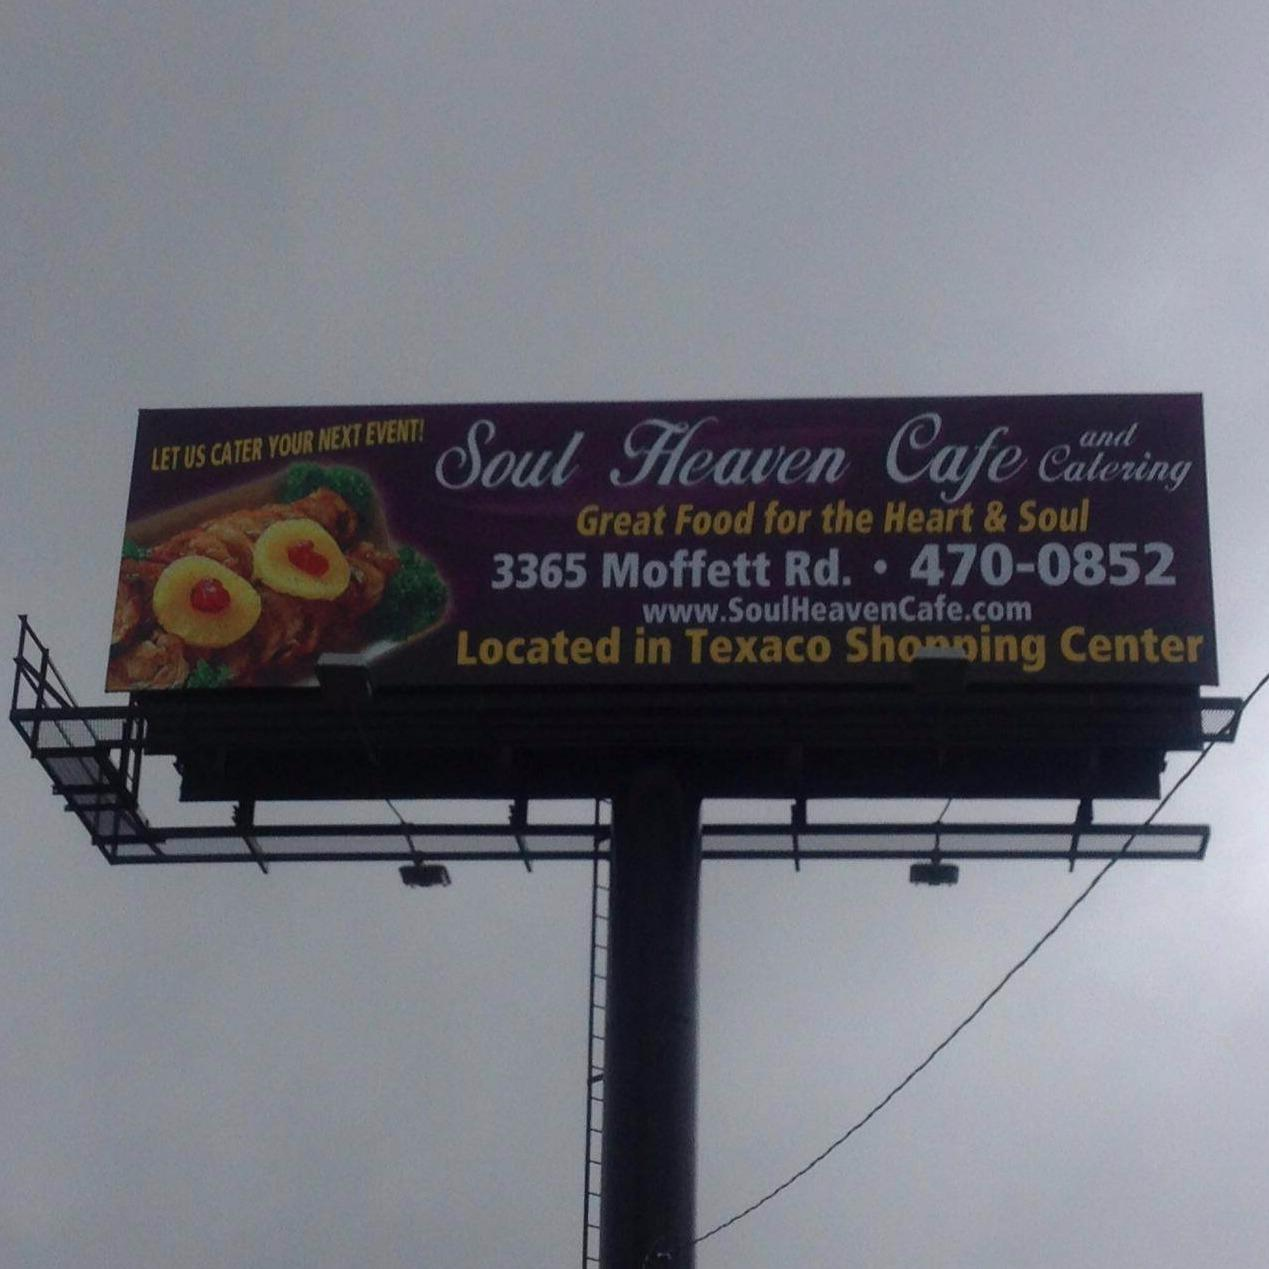 Soul Heaven Cafe & Catering